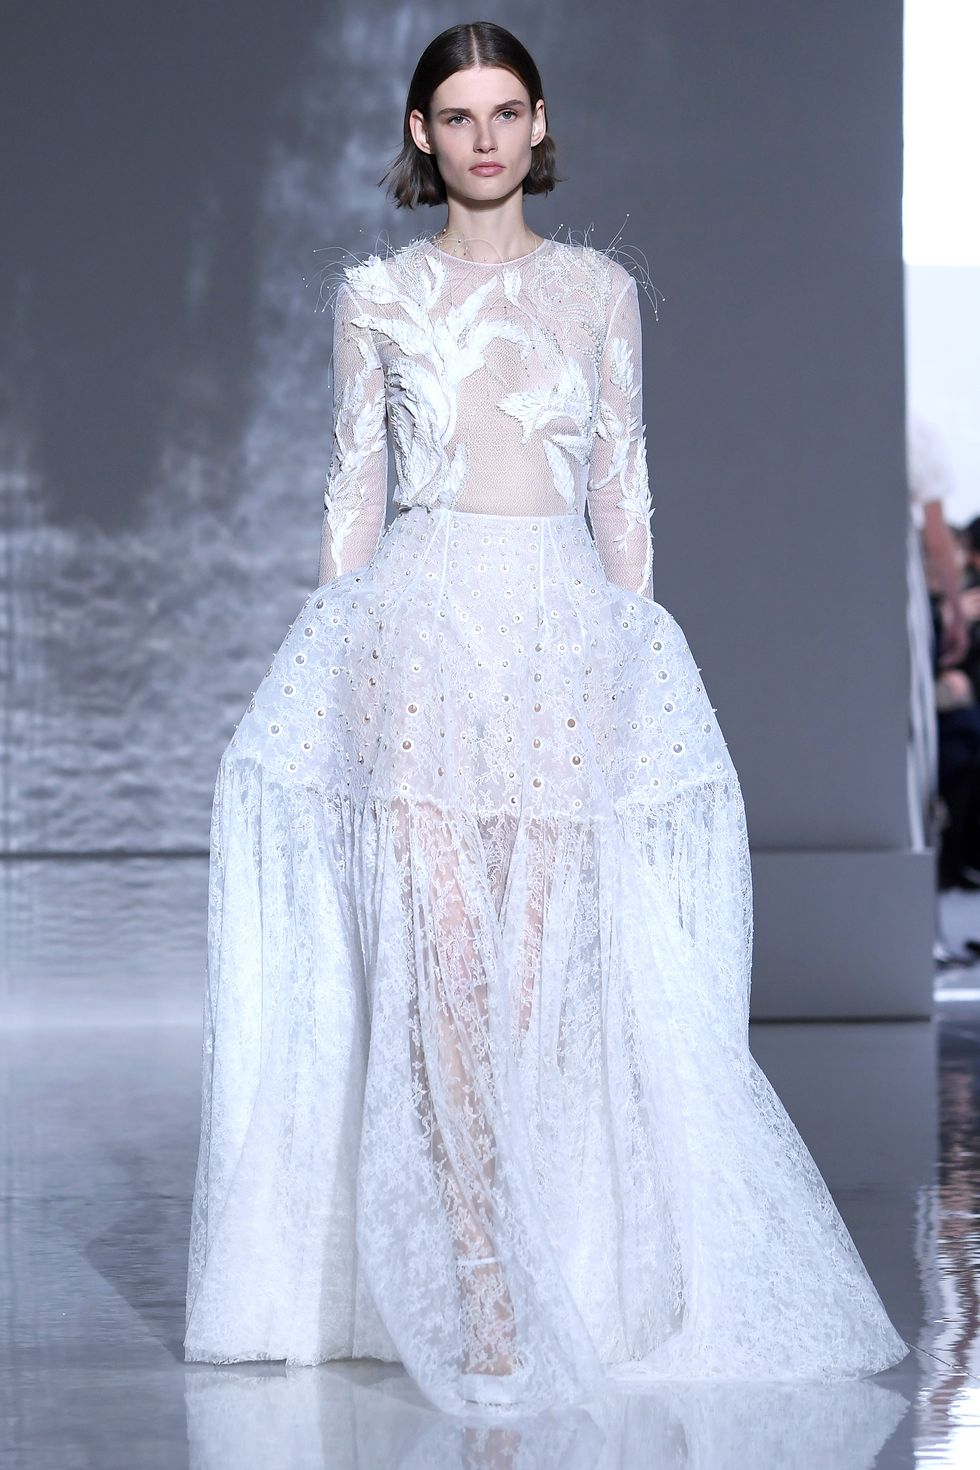 hbz-ss2019-couture-givenchy-05-1548210214.jpg